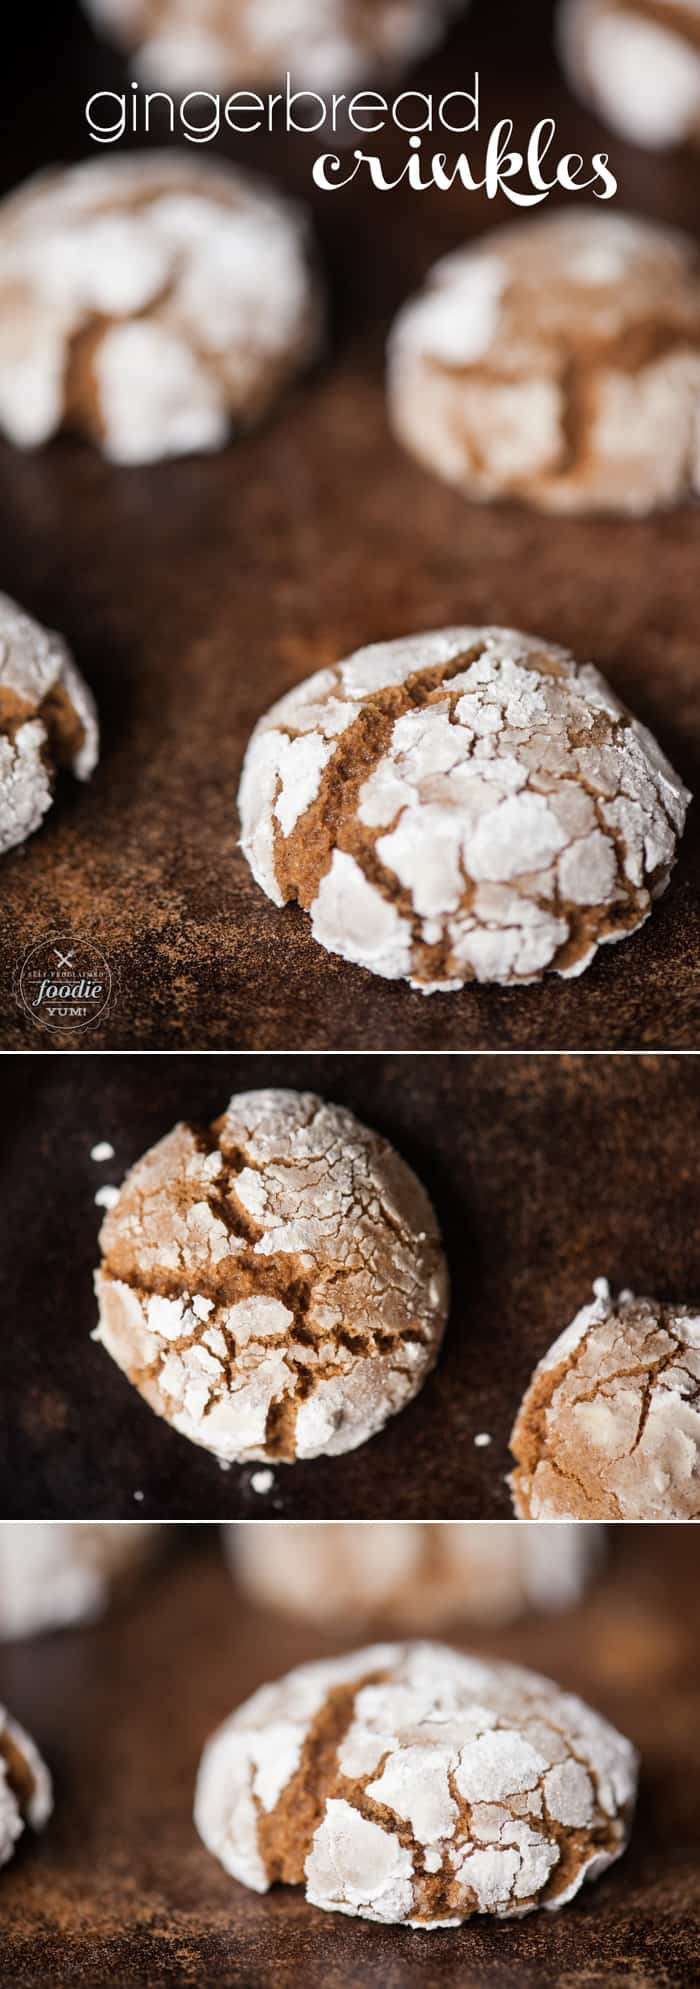 Gingerbread Crinkles are a soft and chewy cookie full of molasses and holiday spice. They are the perfect Christmas treat!